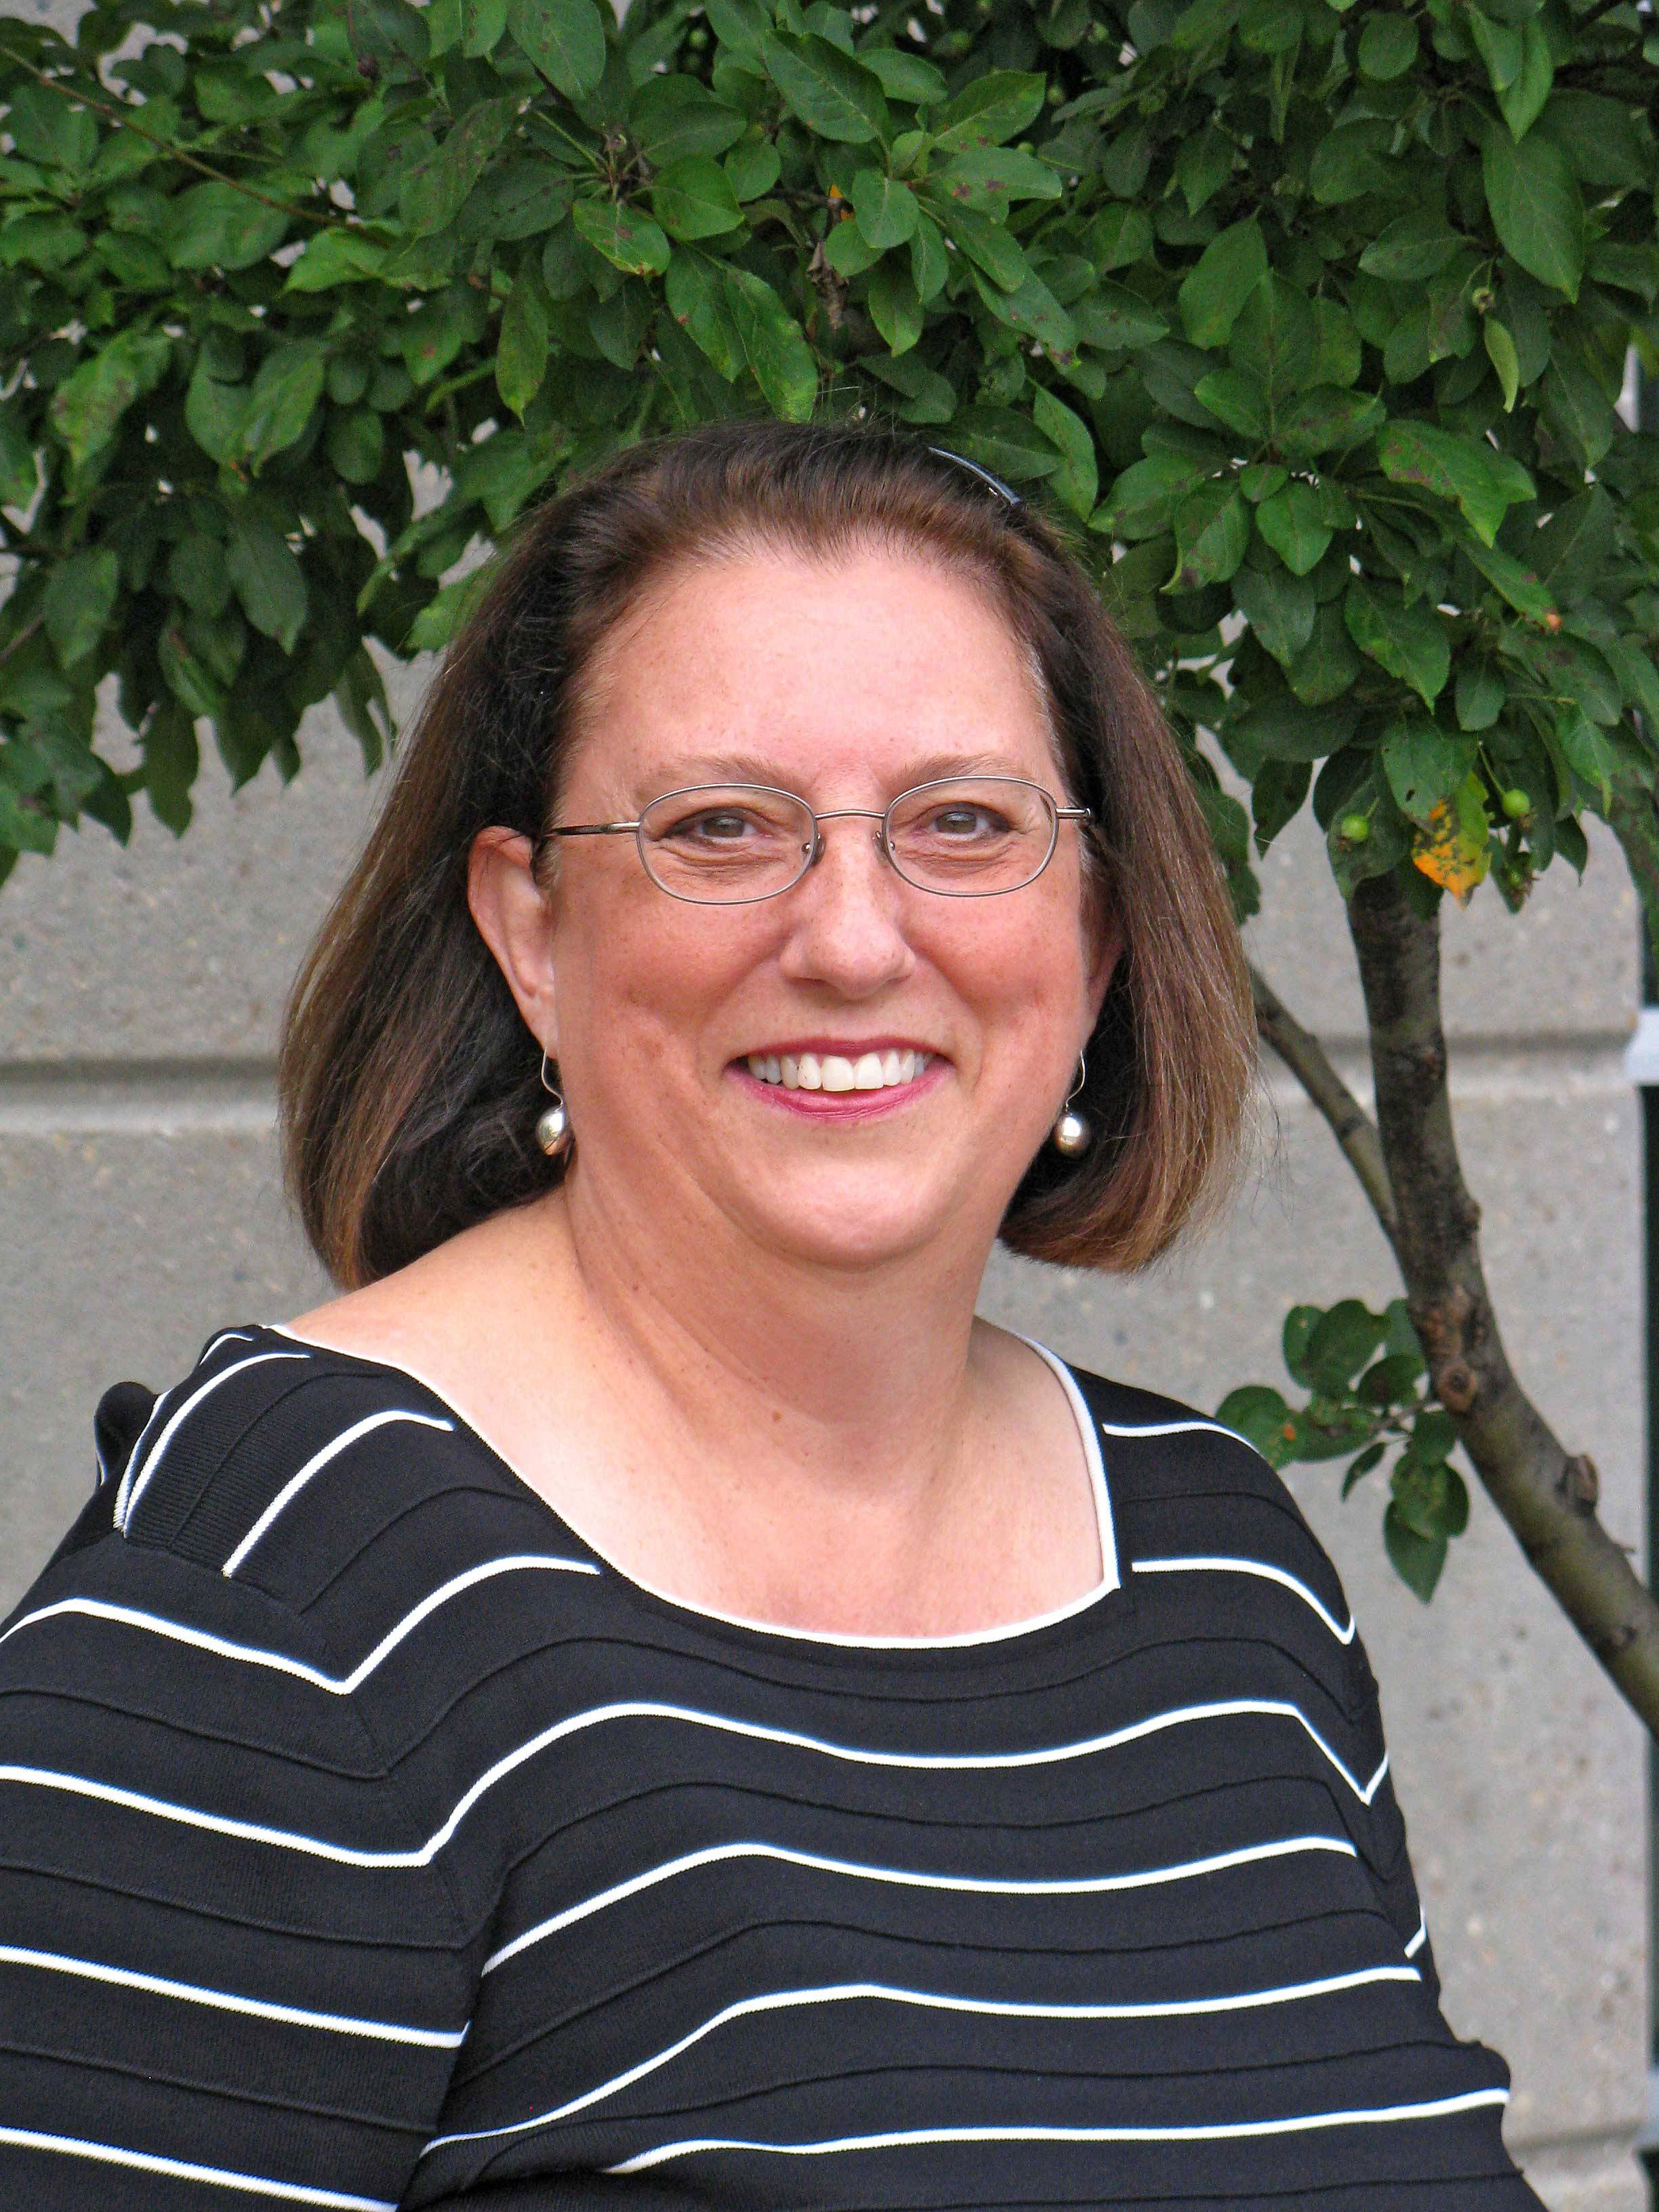 Dorothy Lange, running for Fenton H.S. D100